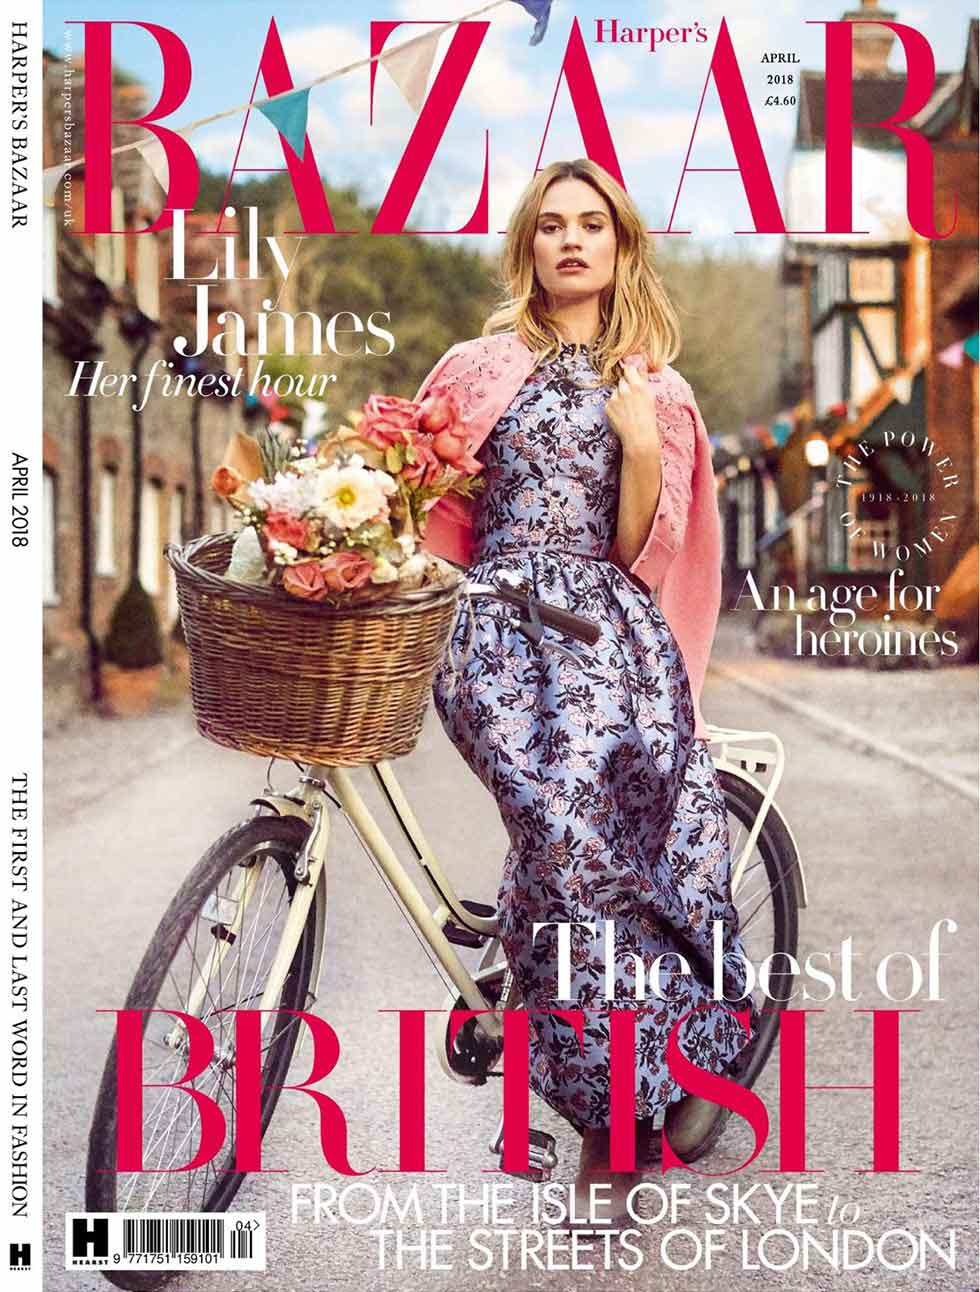 f84058109 HARPER S BAZAAR UK Summer Style in April 18 Issue